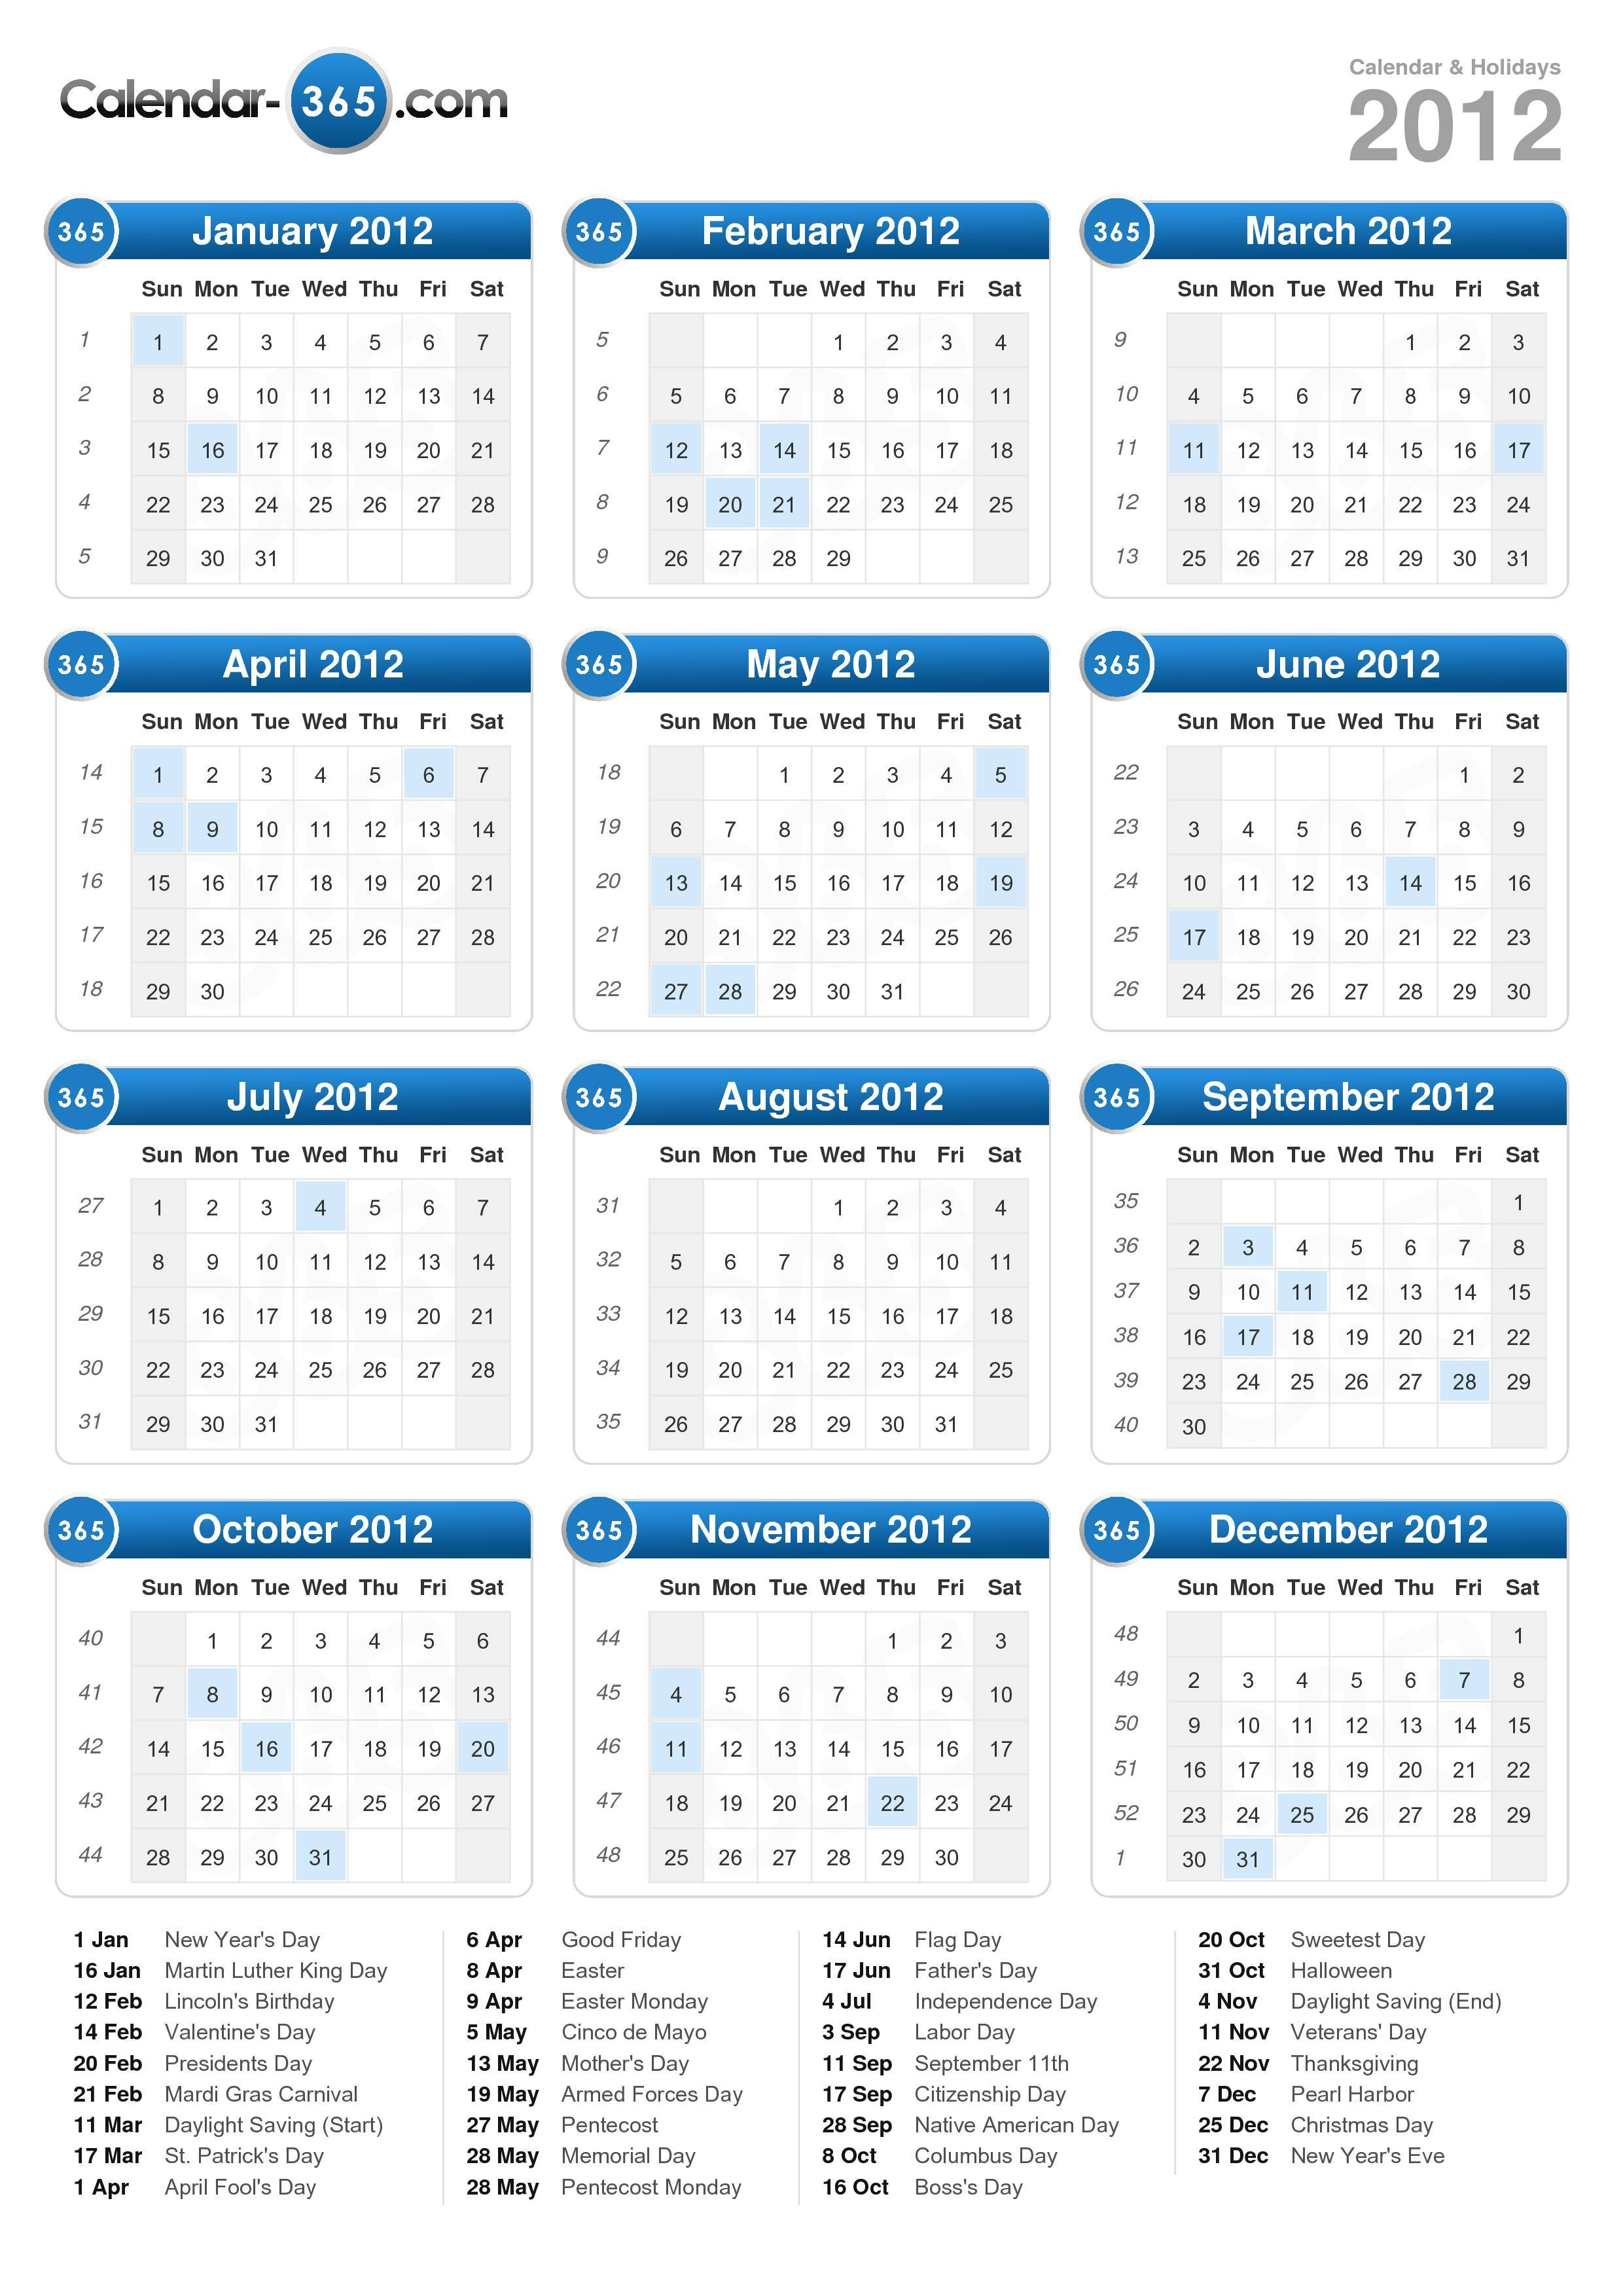 Download the 2012 Calendar with holidays . (Portrait format - 1 Page)